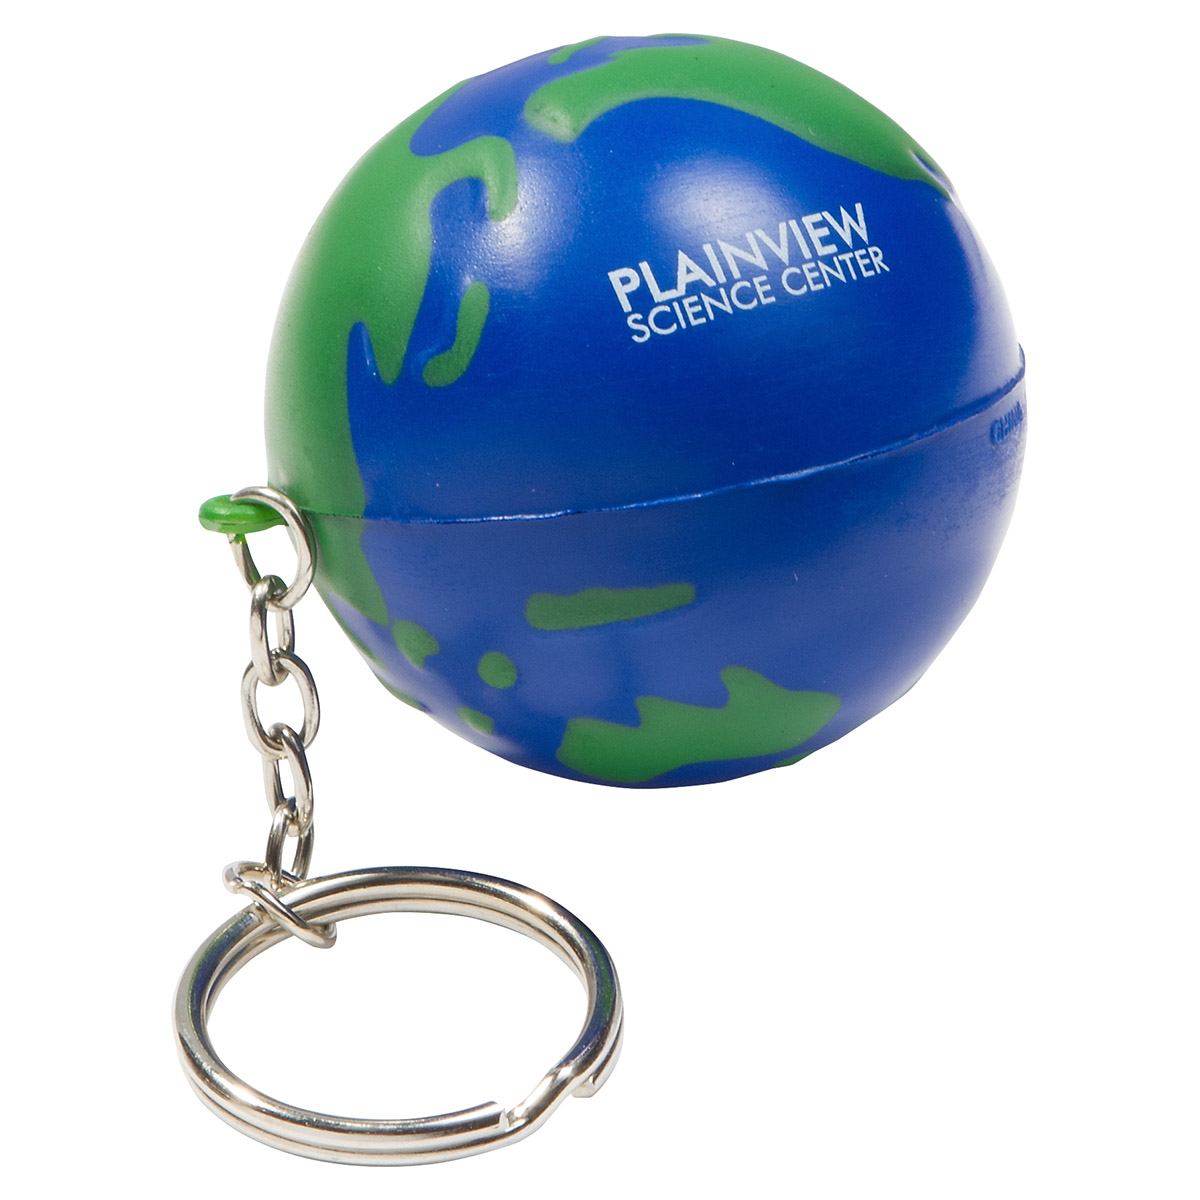 Earthball Stress Reliever Key Chain, LKC-EB01, 1 Colour Imprint